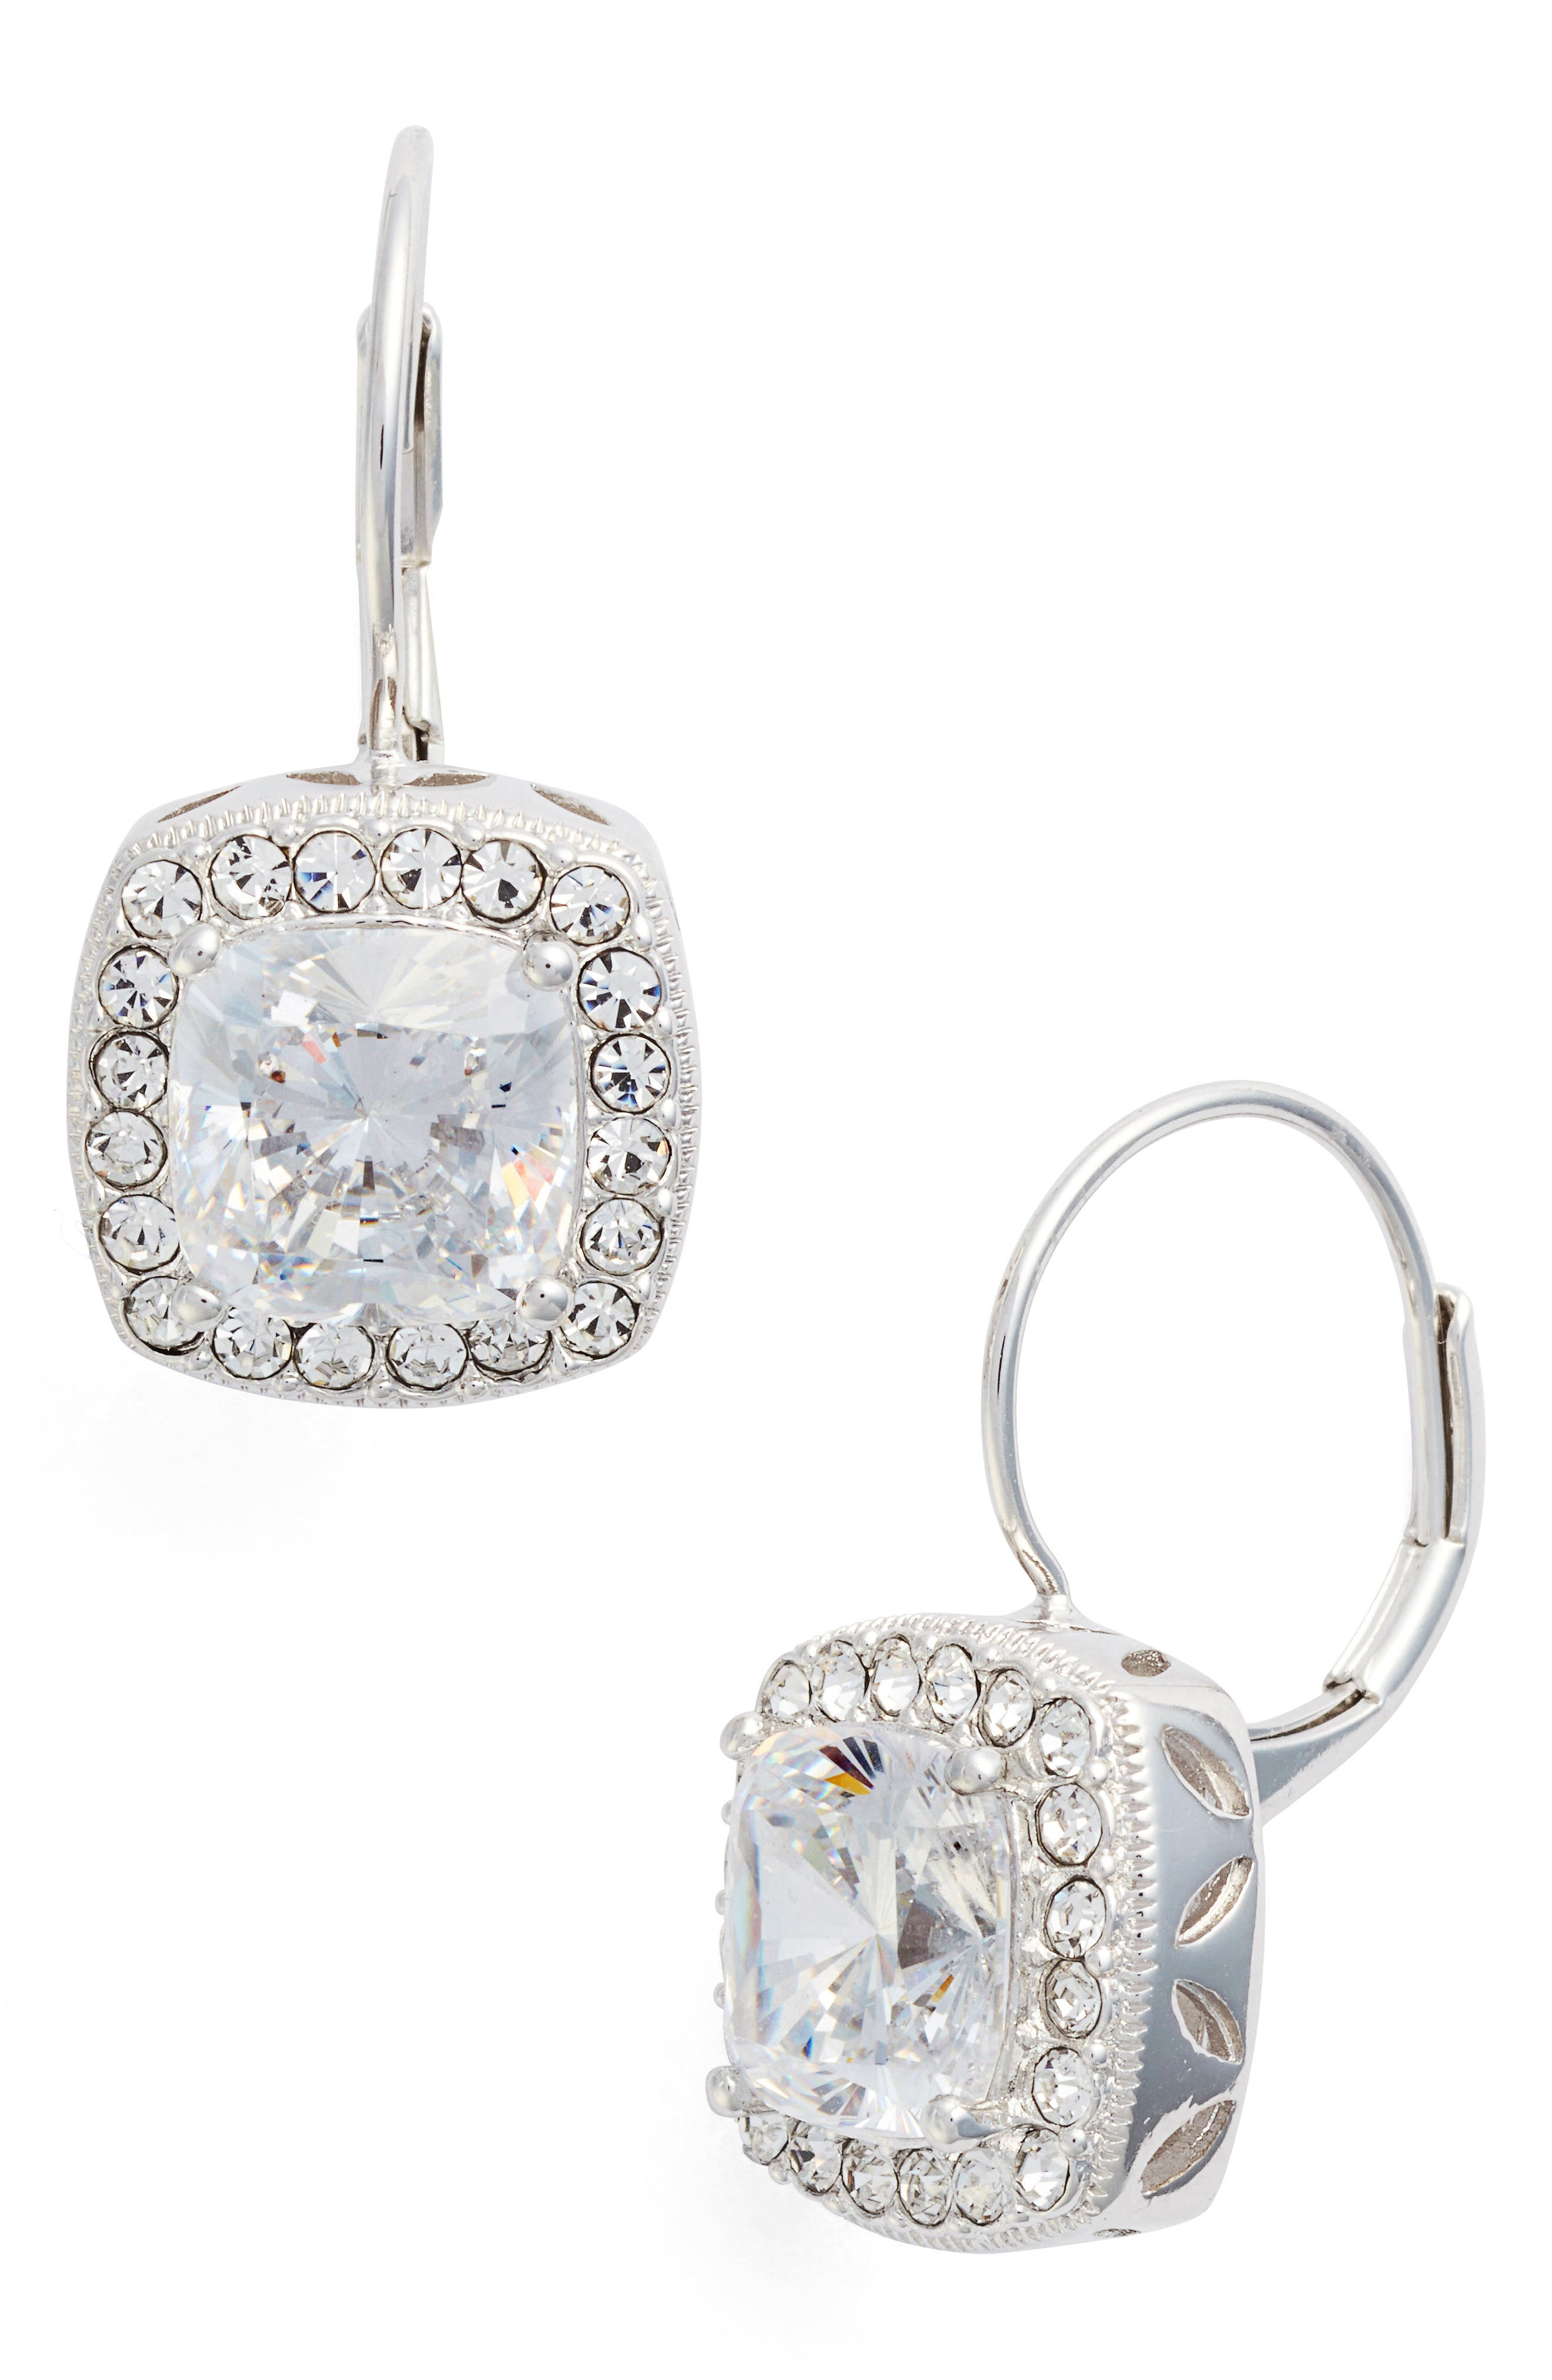 Cubic Zirconia Drop Earrings,                             Main thumbnail 1, color,                             Silver